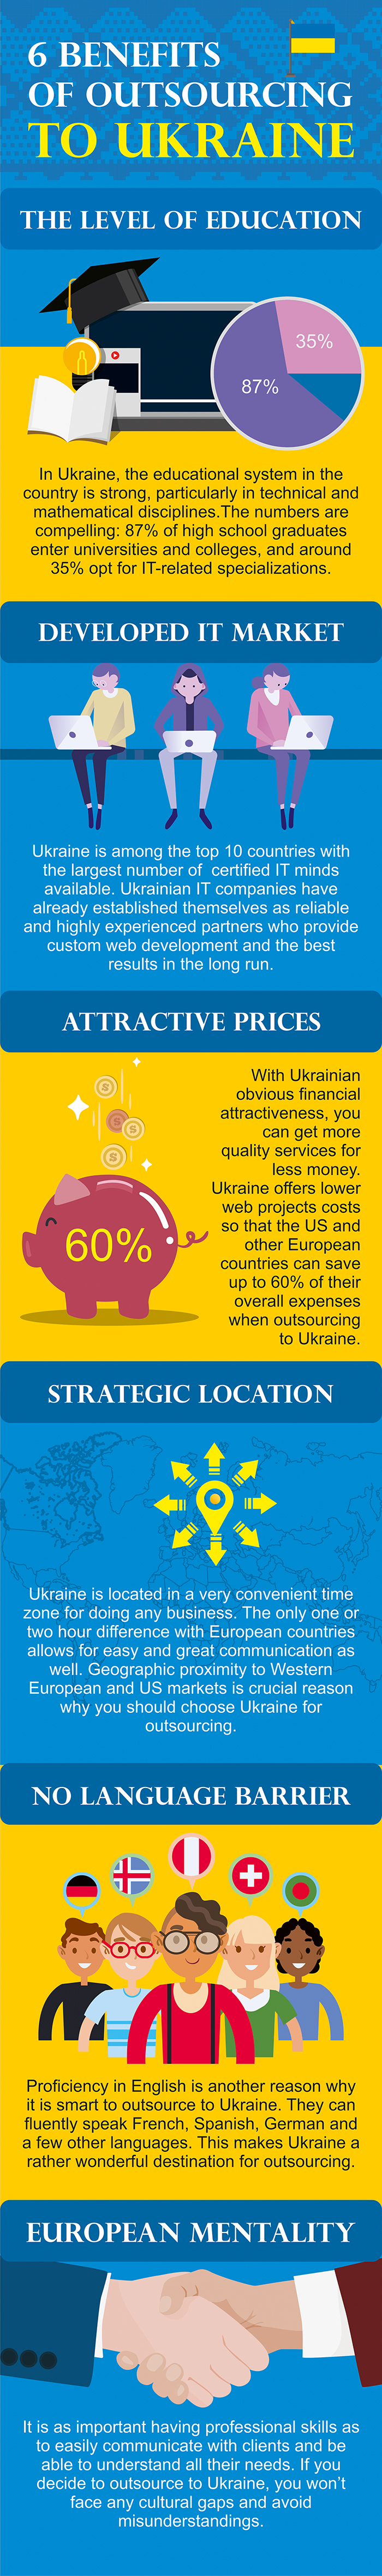 Why outsource web development to Ukraine